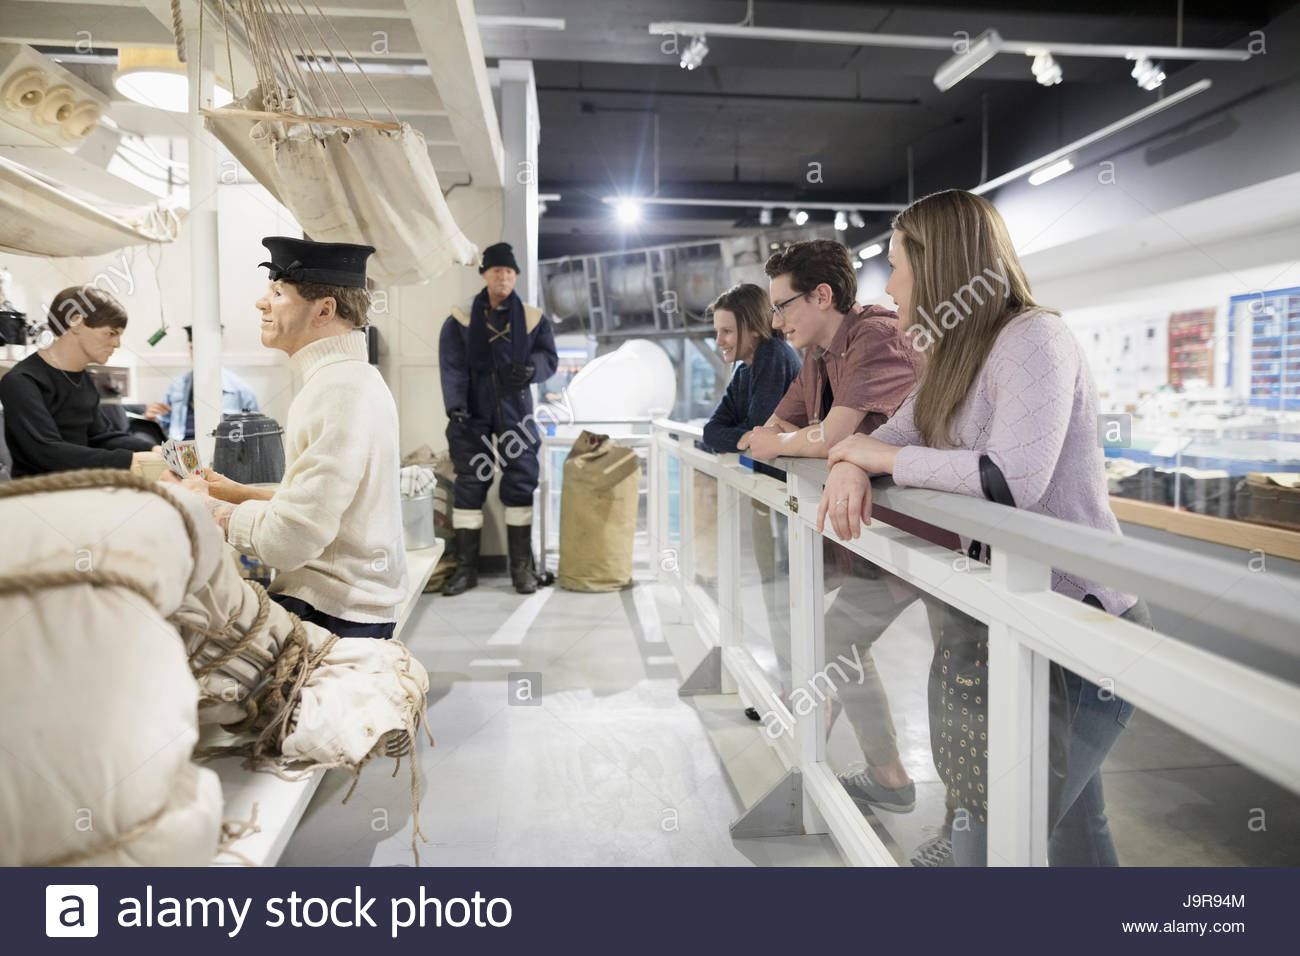 Family looking at Naval exhibit in war museum - Stock Image